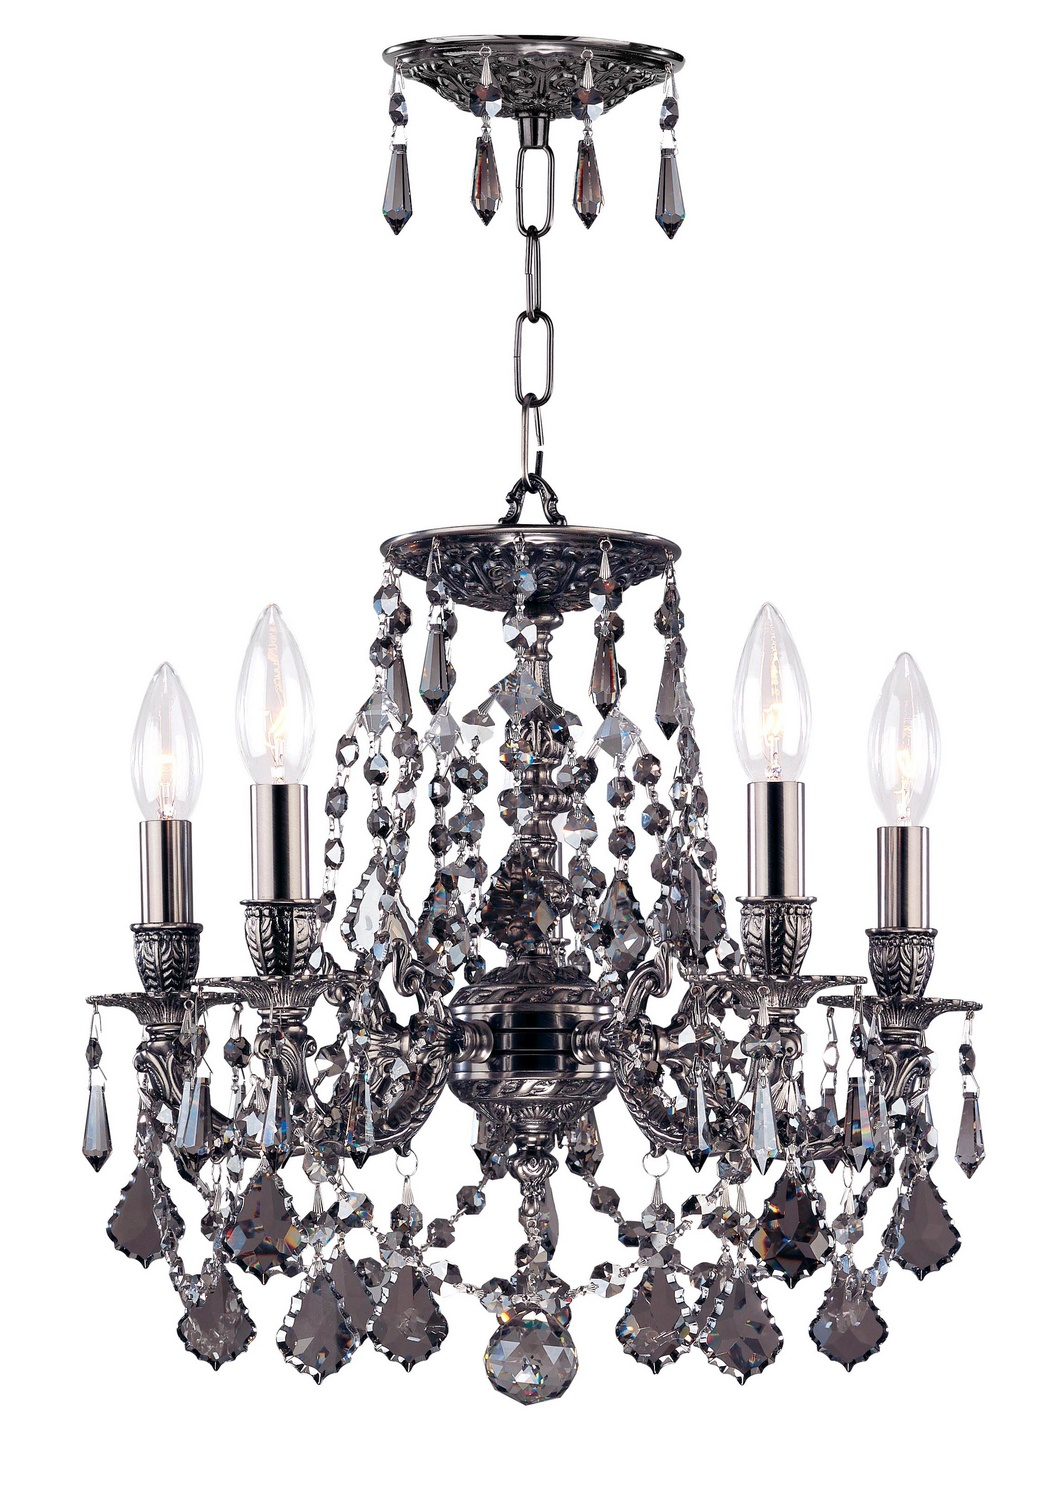 Crystorama 5545-PW-SS-MWP Five Light Mini Chandelier by Crystorama